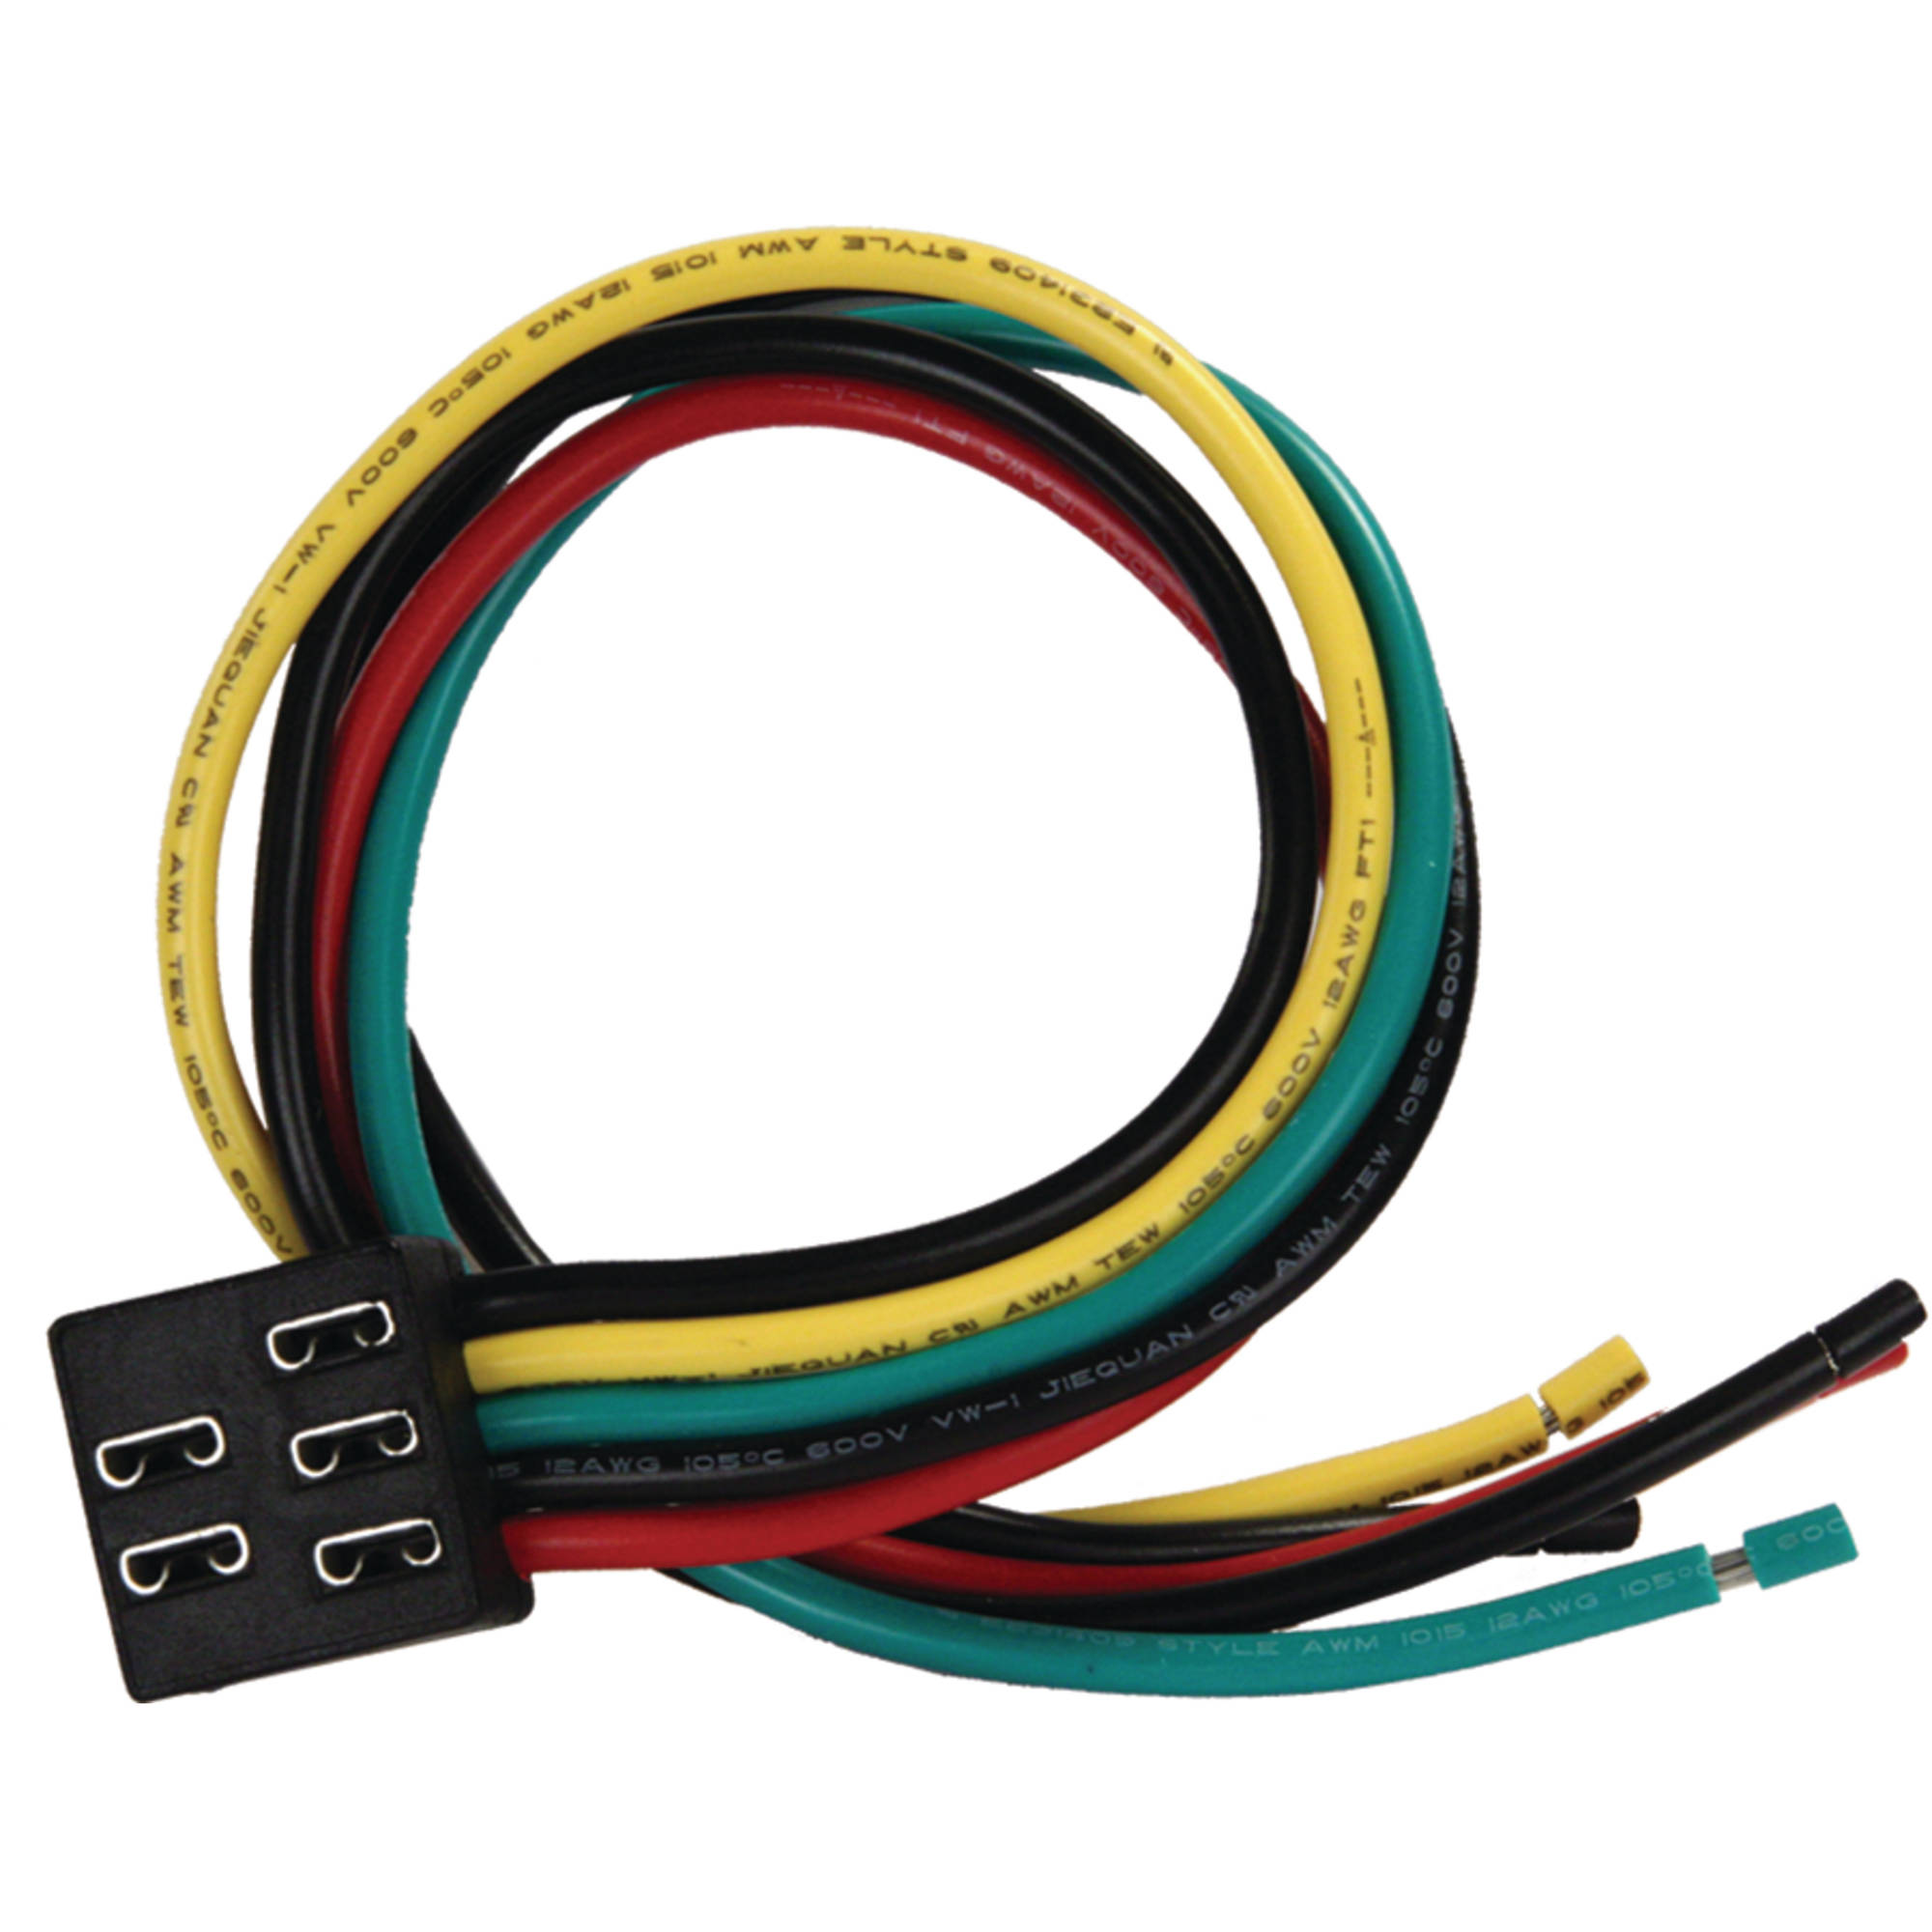 hight resolution of jr products 13061 slide out rv switch wiring harness walmart com rv slide wiring harness